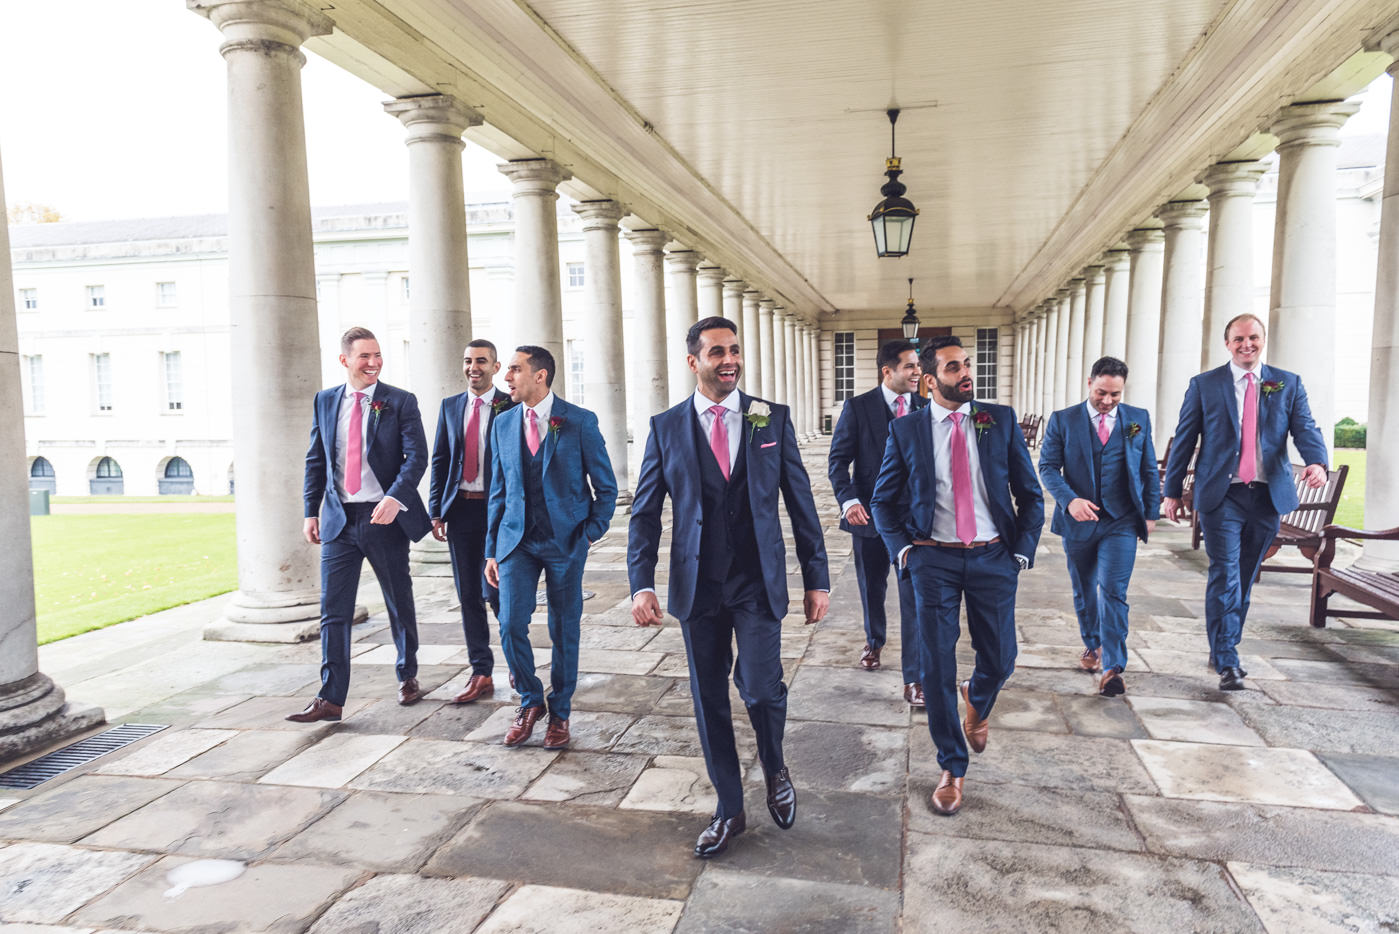 Greenwich wedding photographer London